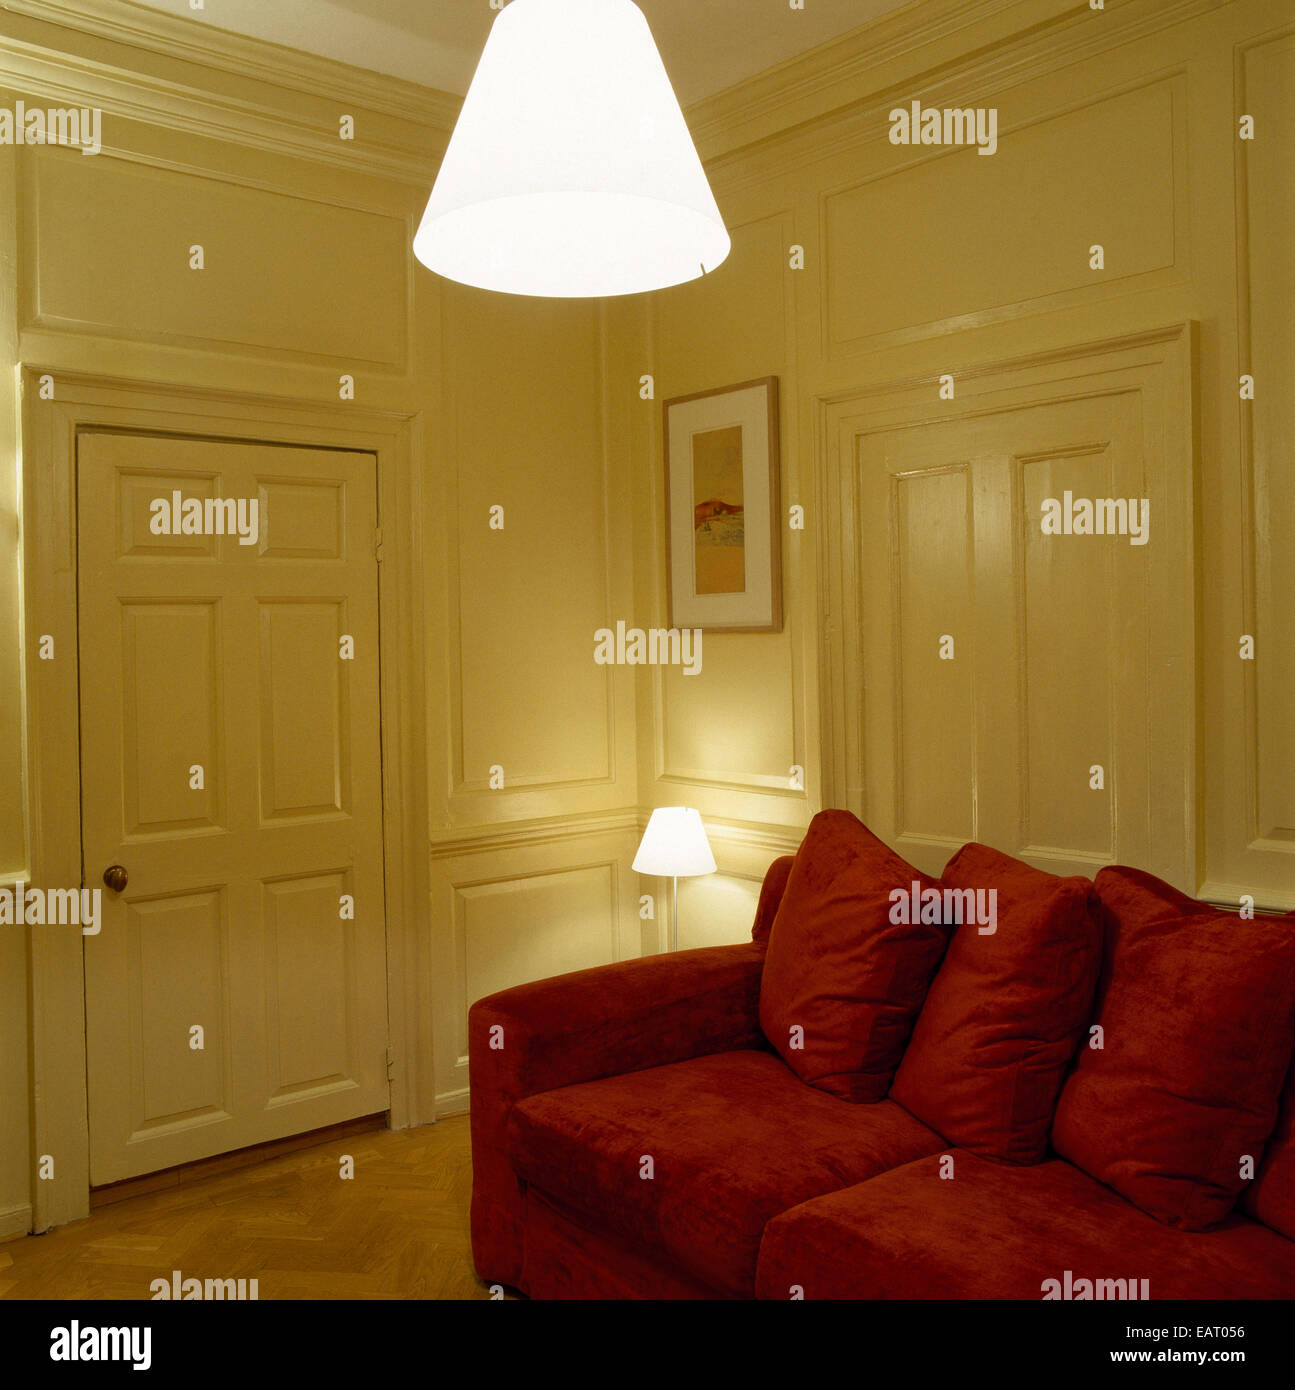 A Traditional, Yellow Living Room With Wood Panelled Walls, Red Sofa With  Cushions, Lit Lamp, UK Part 75